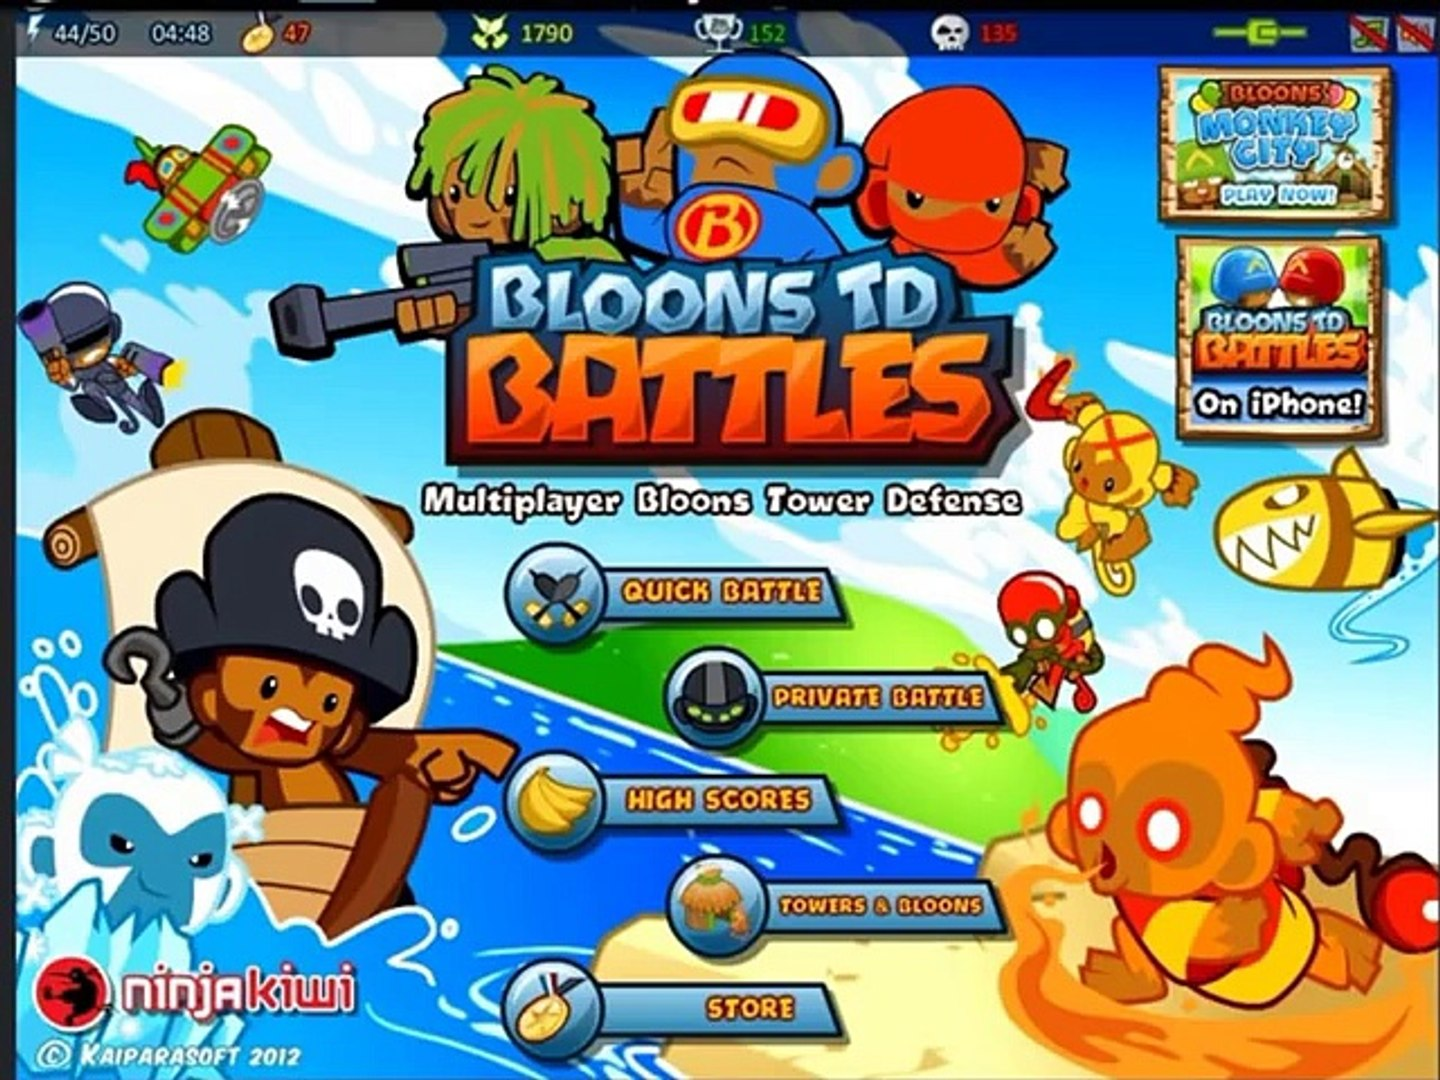 btd battles hack apk unlimited money